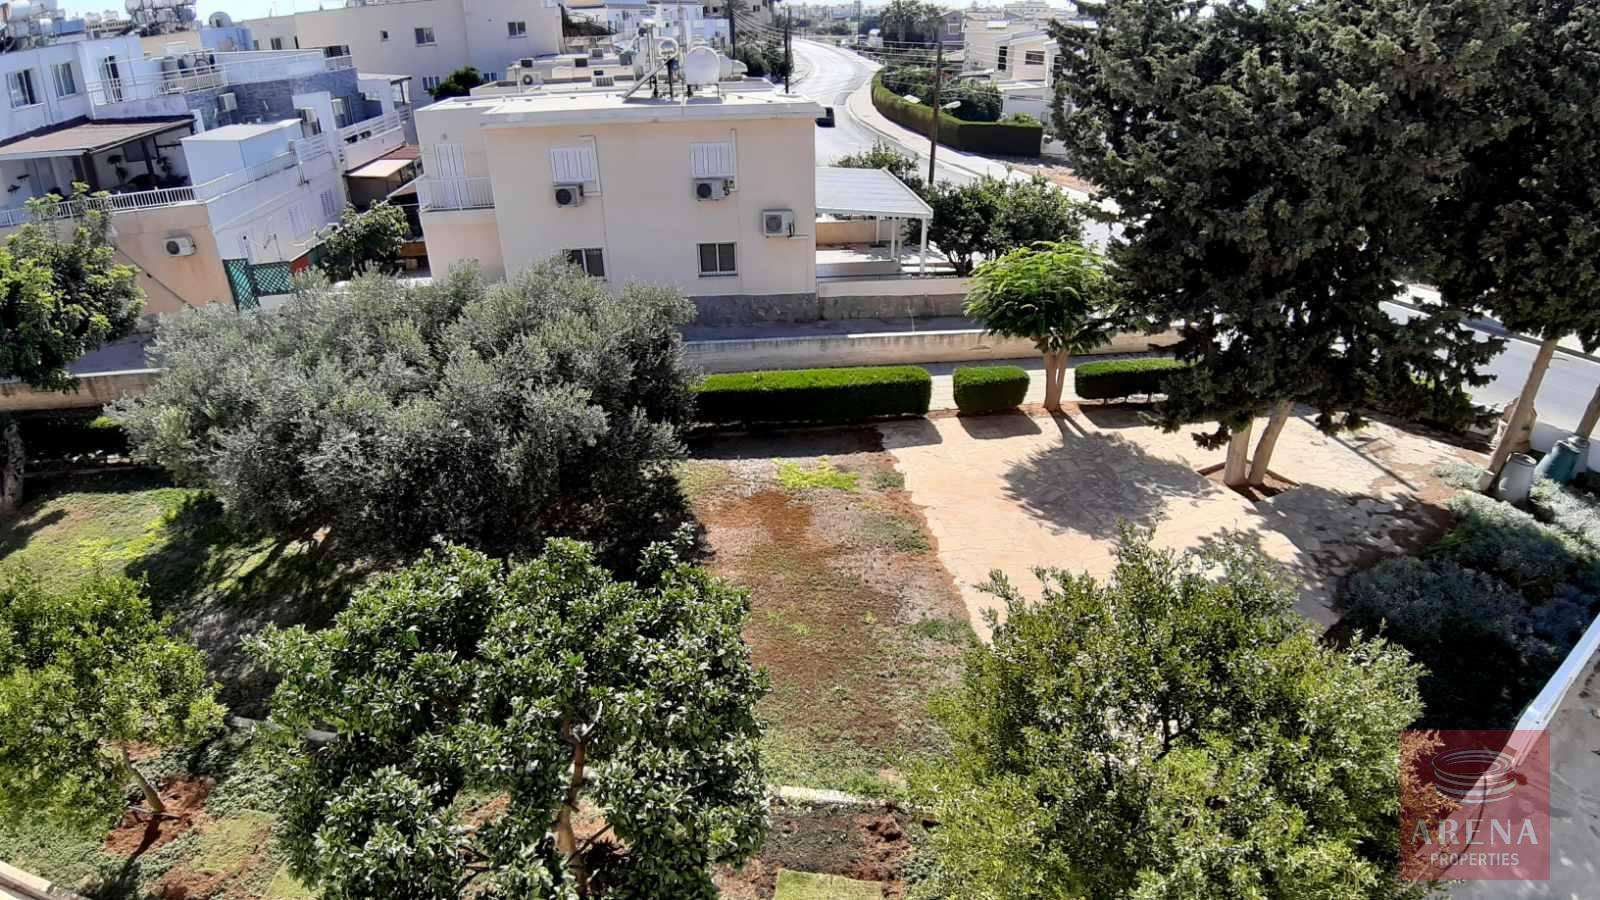 2 Bed Apt for rent in Paralimni - views